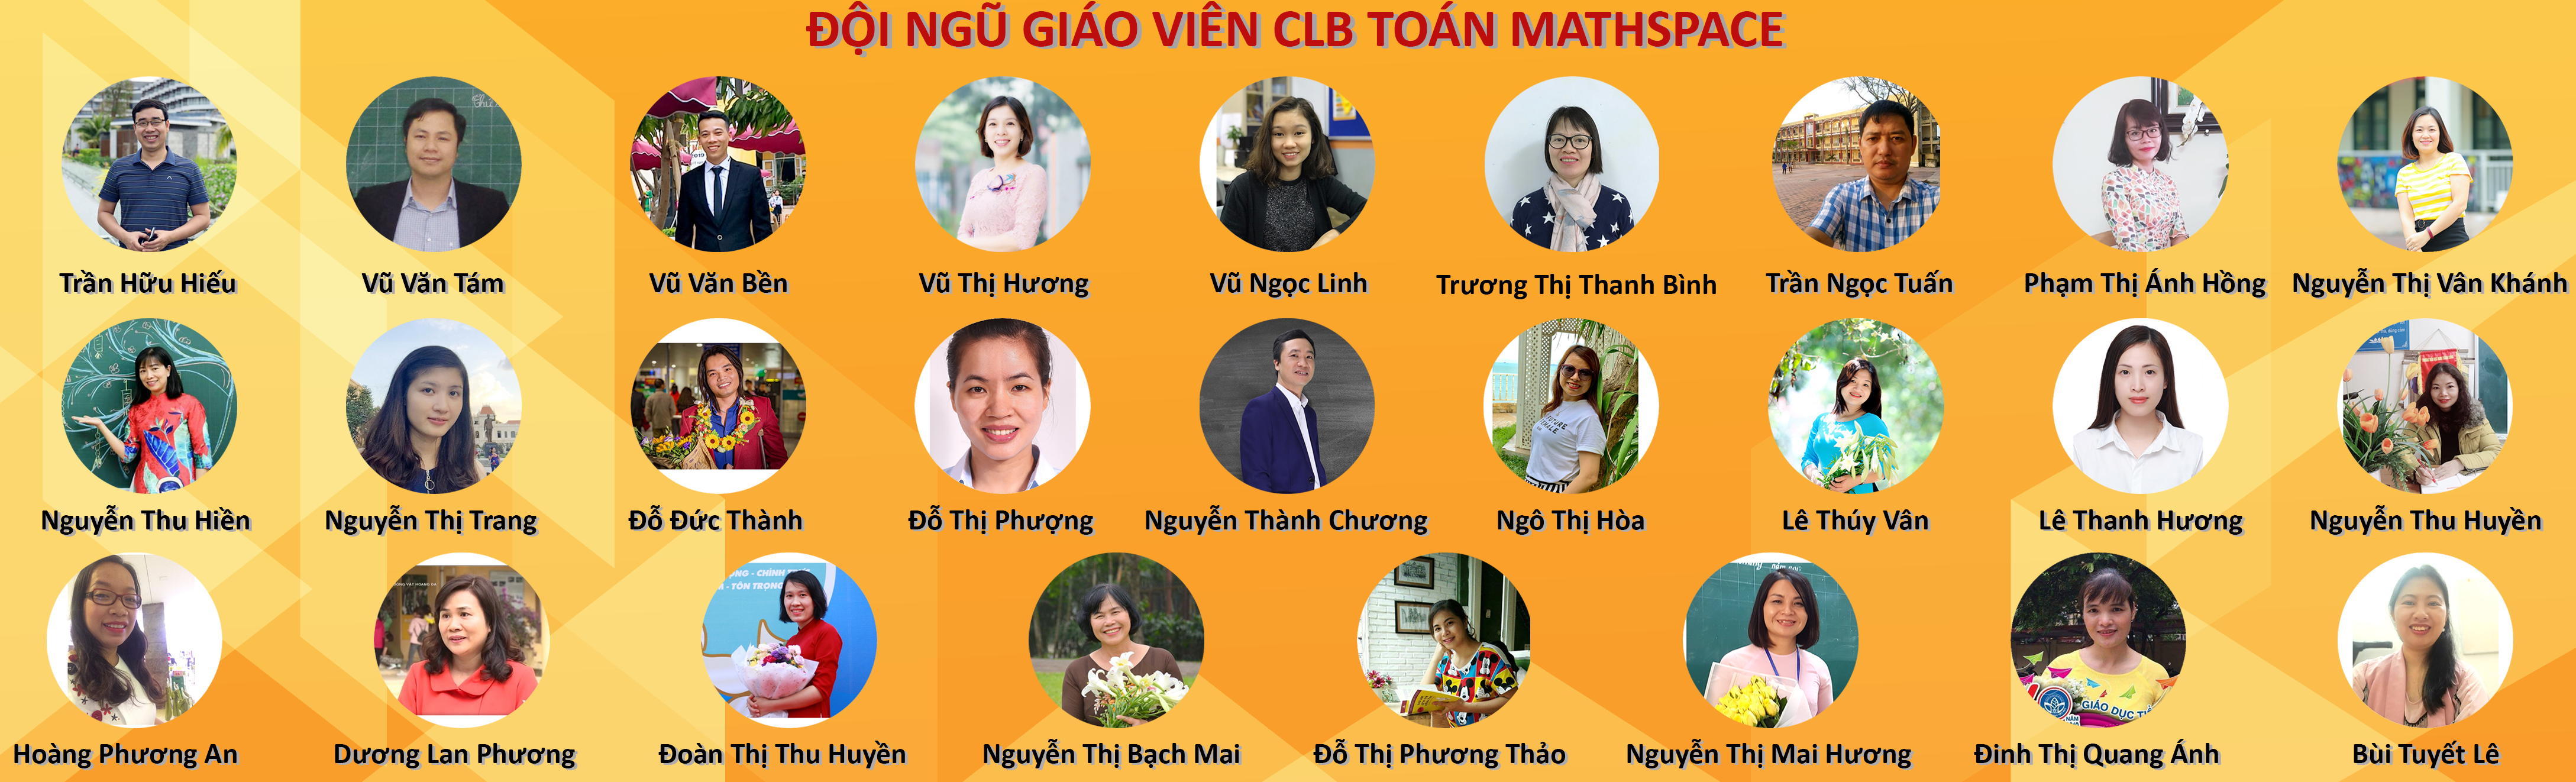 GIAO-VIEN-CLB-TOAN-MATHSPACE